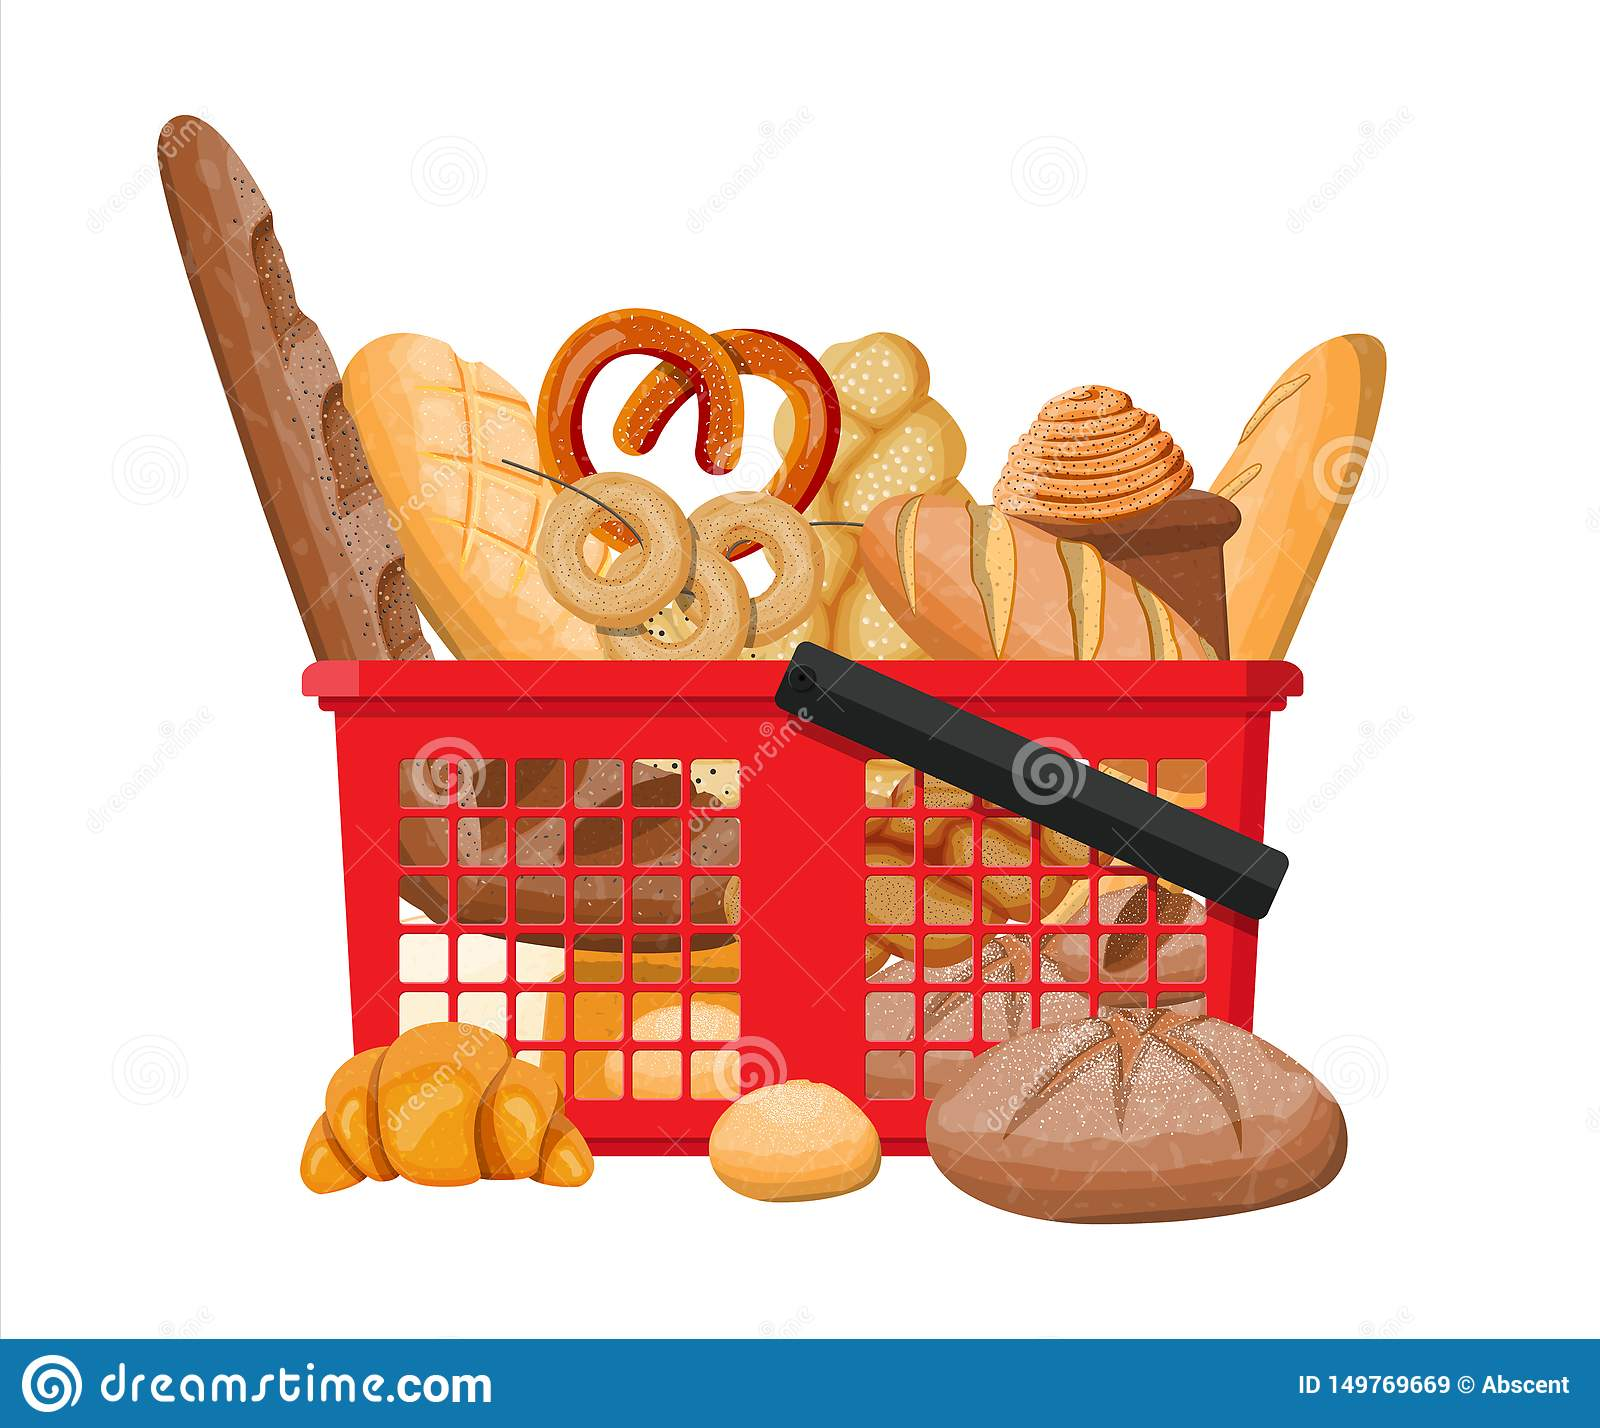 Bread icons and shopping basket.